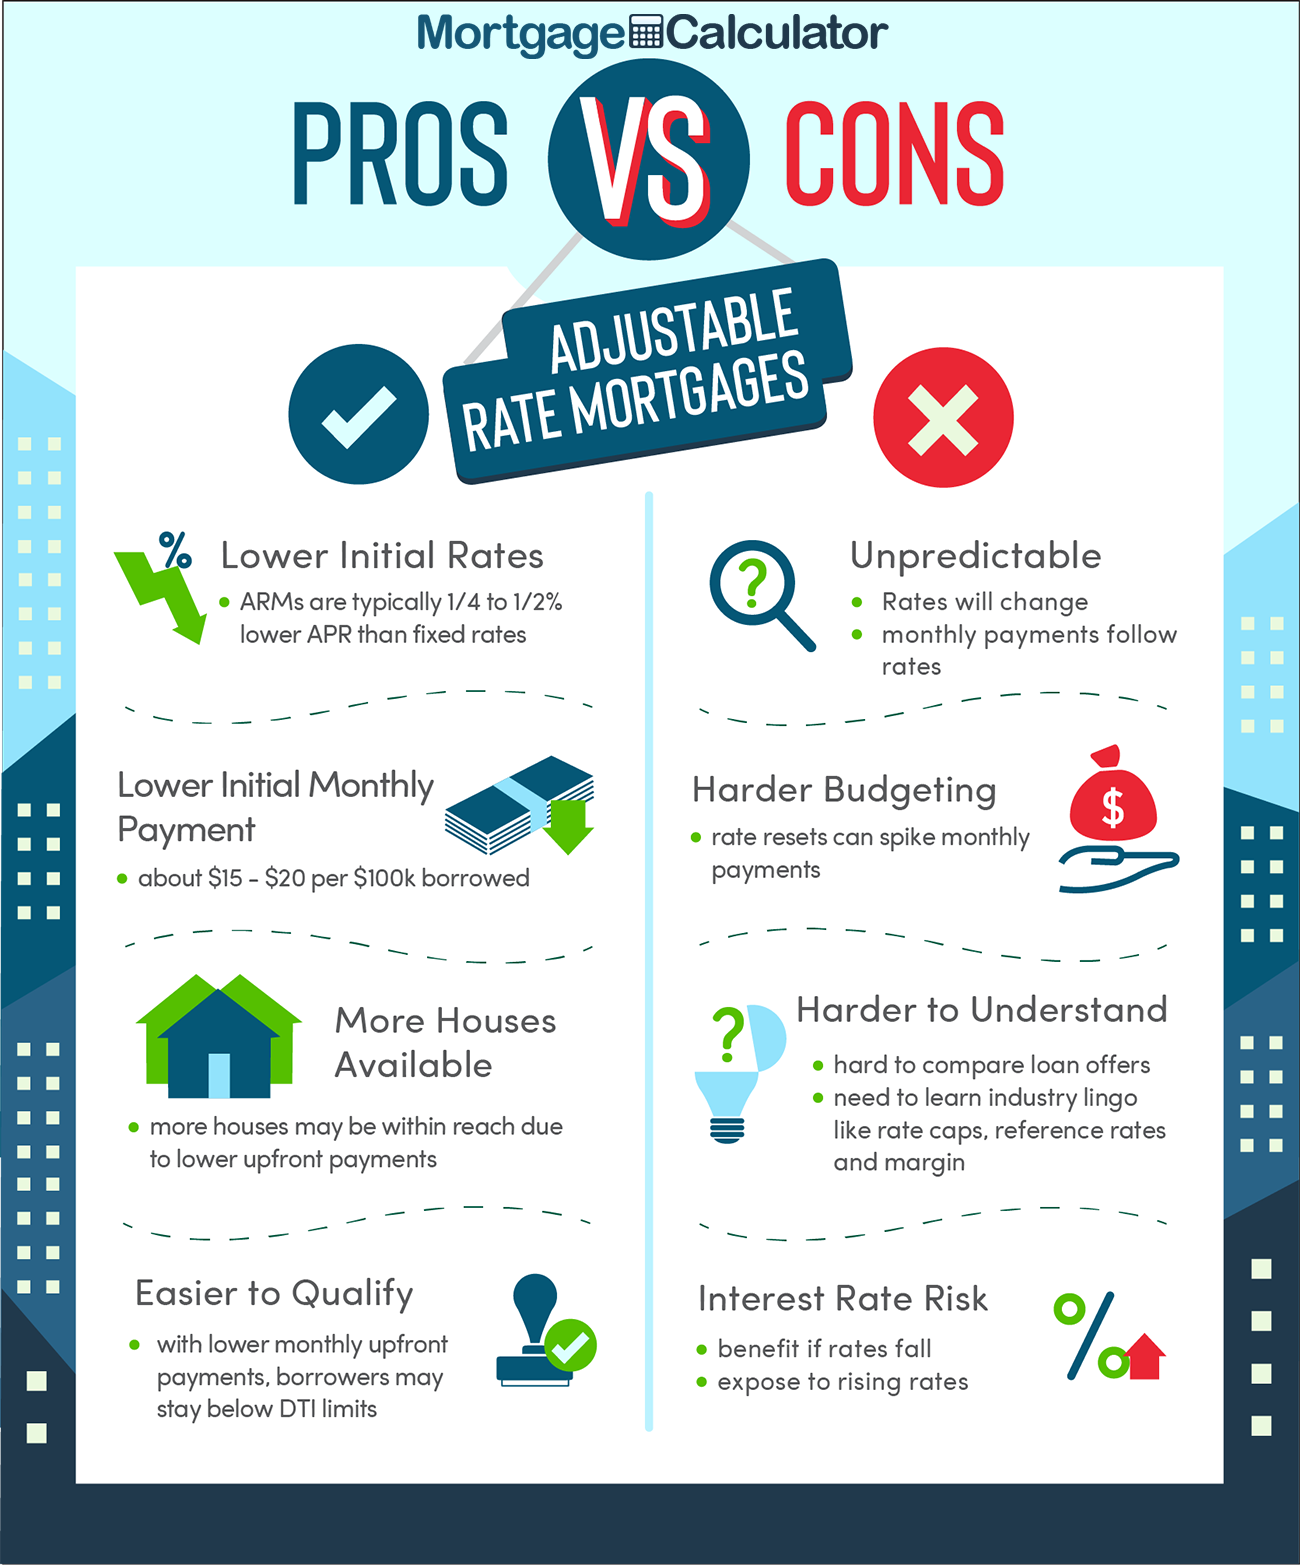 Pros And Cons Of Adjustable Rate Mortgages Adjustable Rate Mortgage First Home Buyer Fixed Rate Mortgage